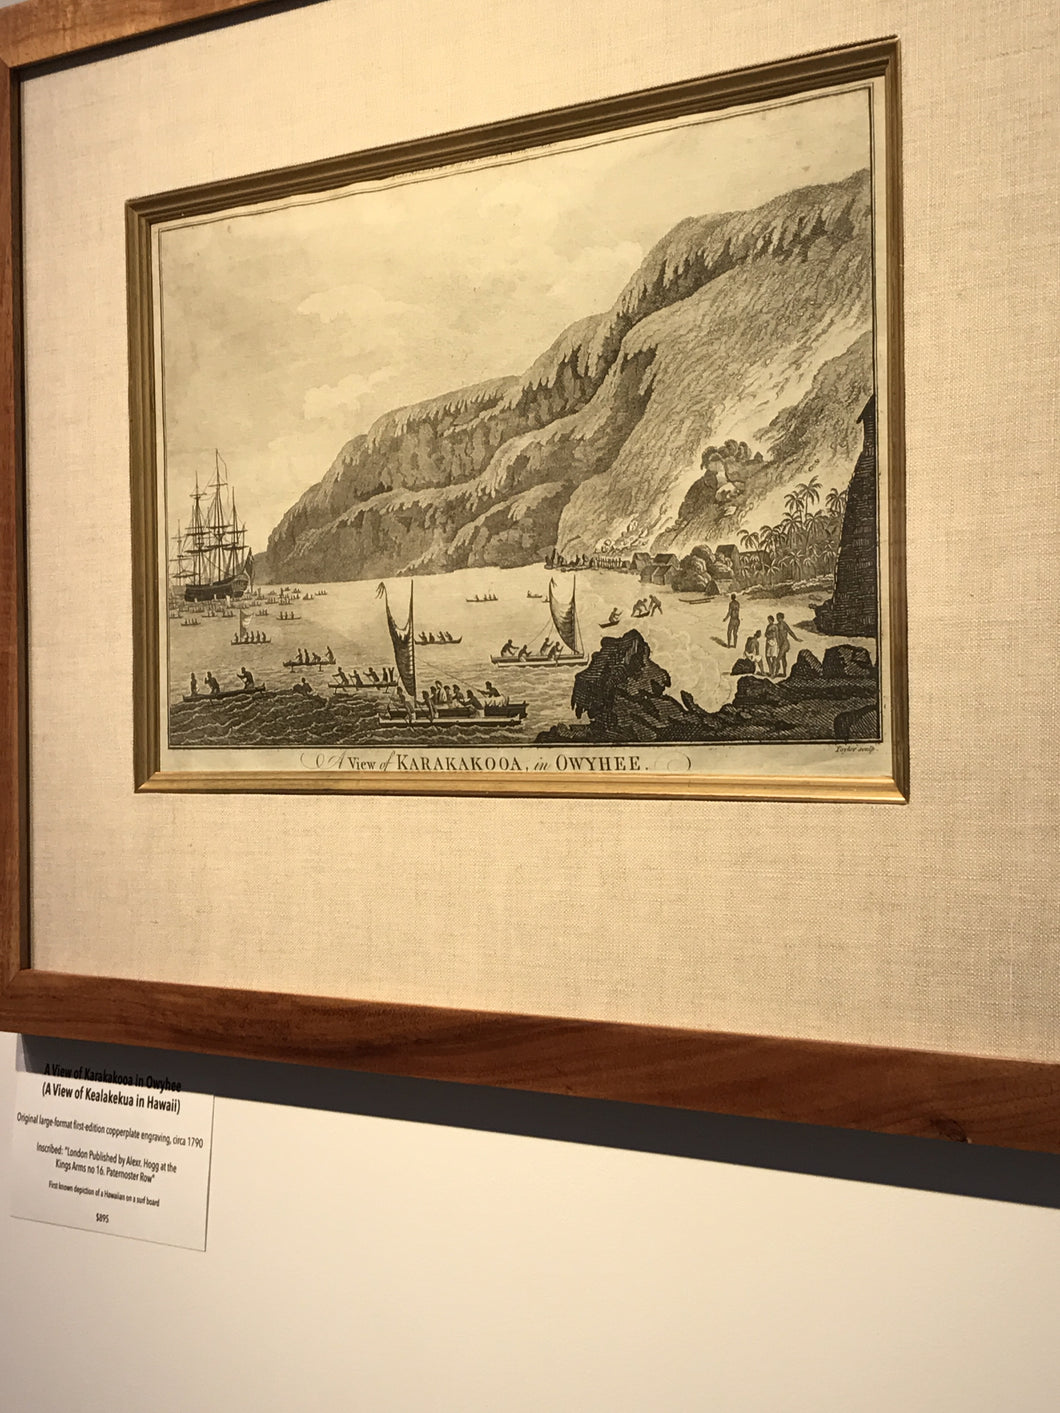 1790 'A VIEW OF KARAKAKOOA IN OWYHEE' (A View of Kealakekua in Hawaii)